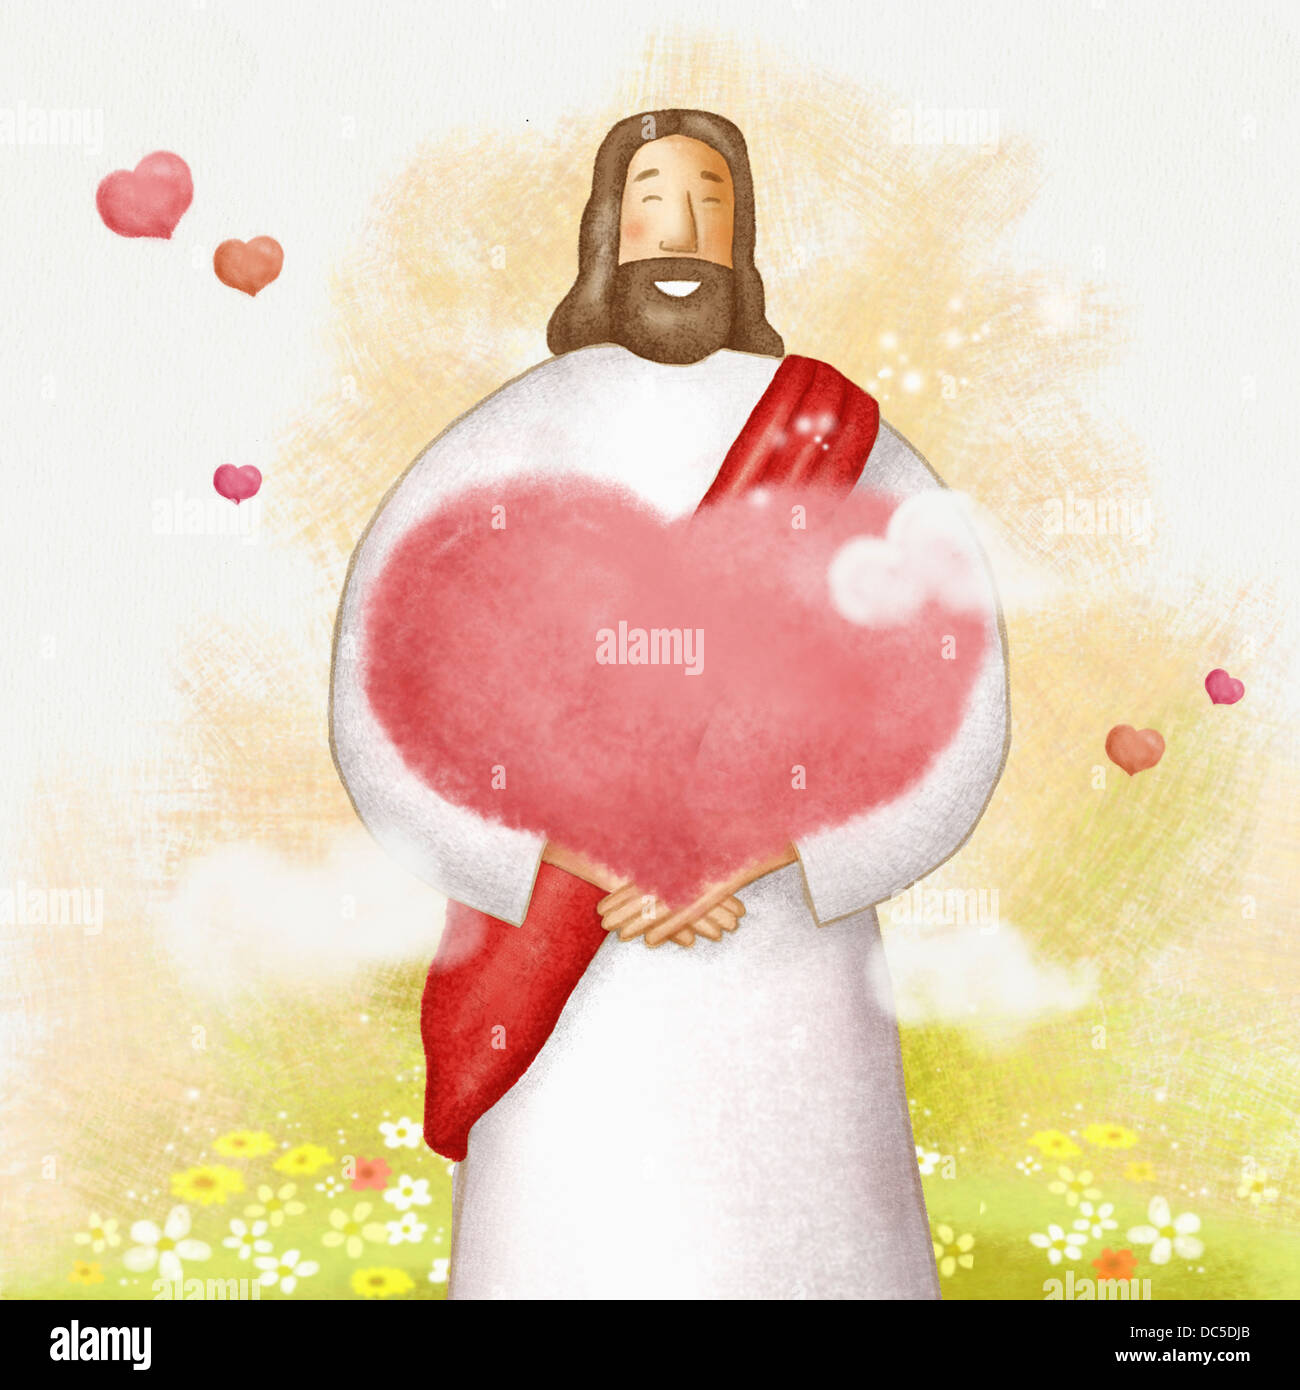 Jesus Christ Holding Heart Shape Stock Photos & Jesus Christ Holding ...